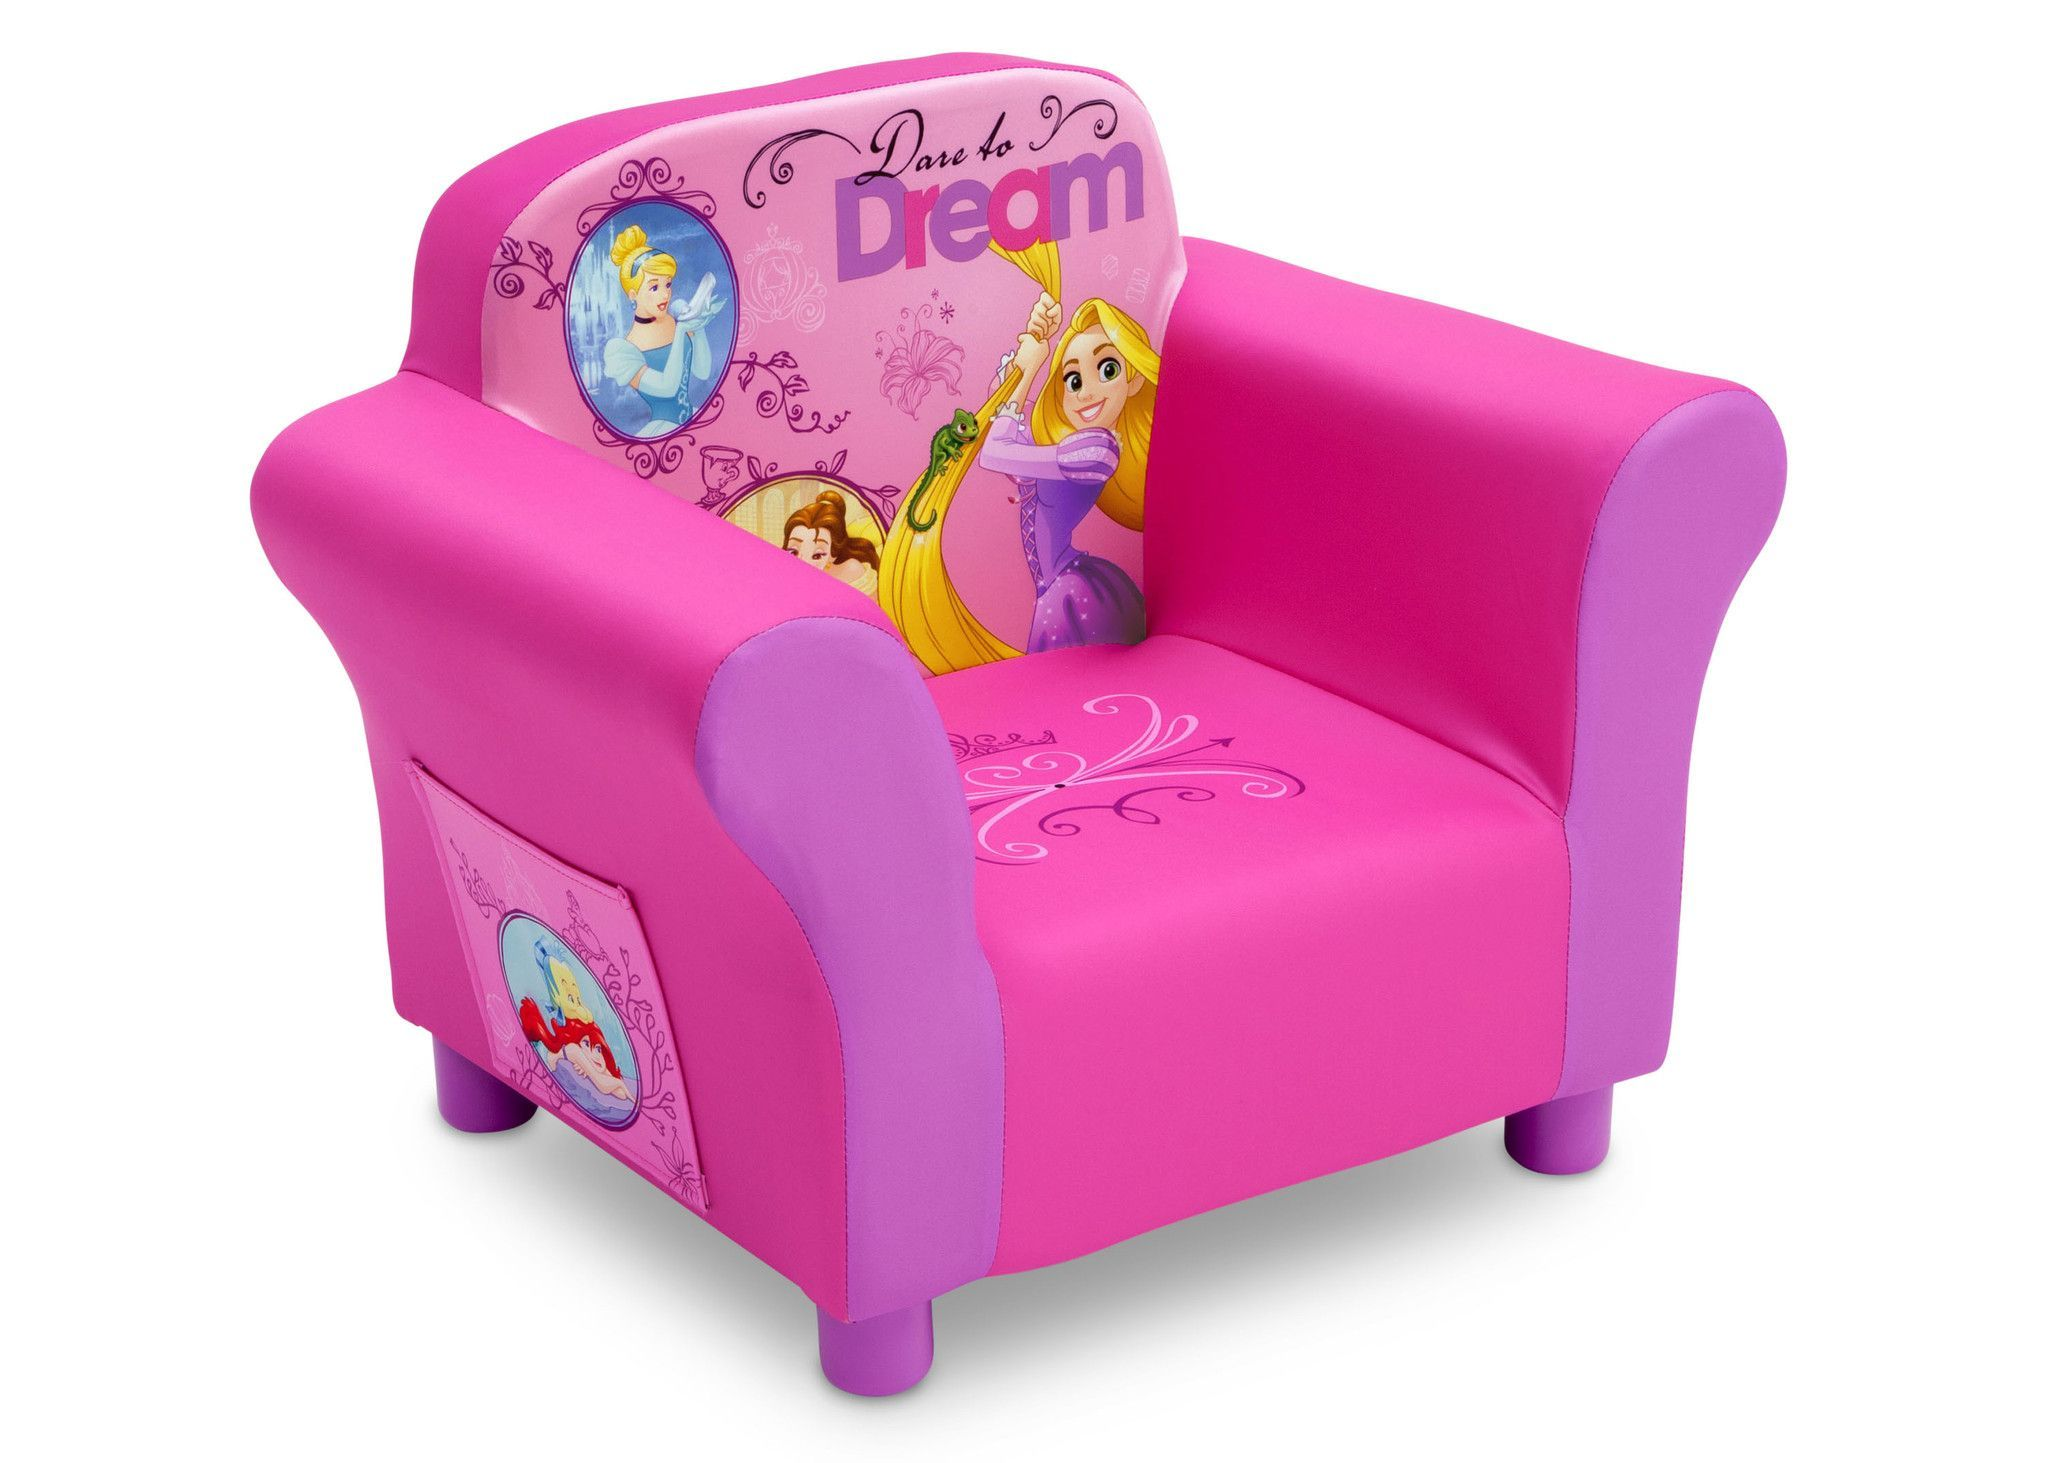 Your little princess' dreams will come true cuddling up in this Disney Princess Upholstered Chair from Delta Children. A cozy toddler chair, it features a durable wood frame, plush foam padding, stora